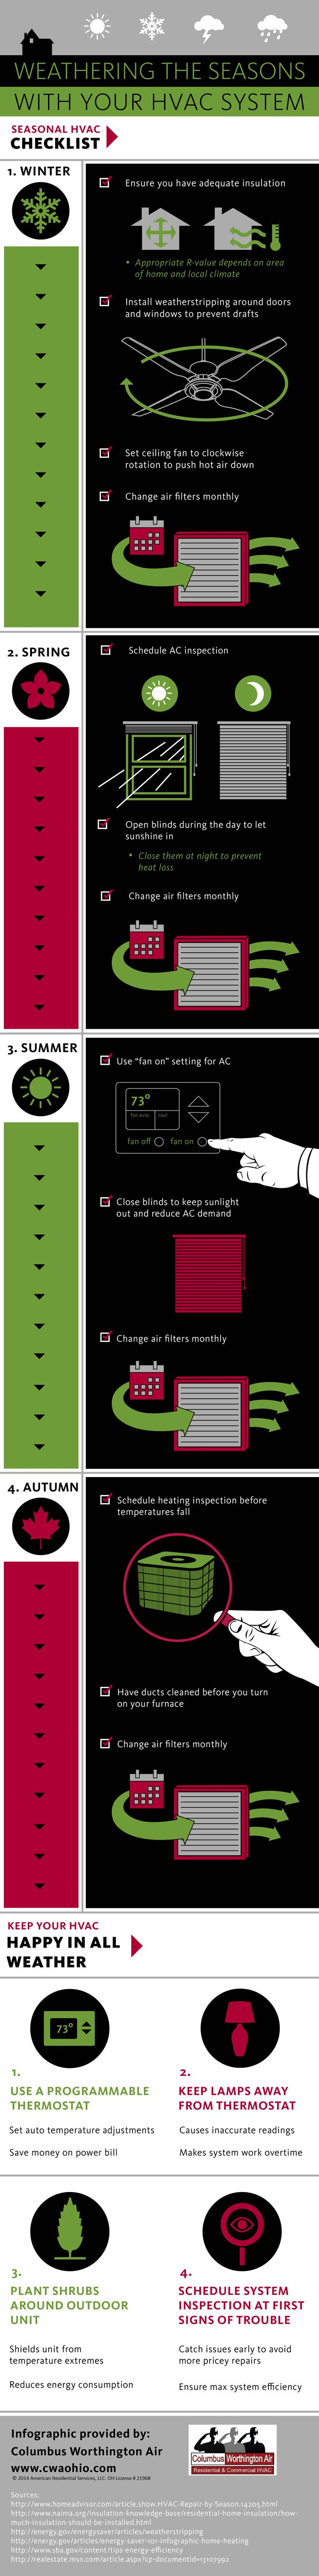 Weathering with HVAC Systems Infographic